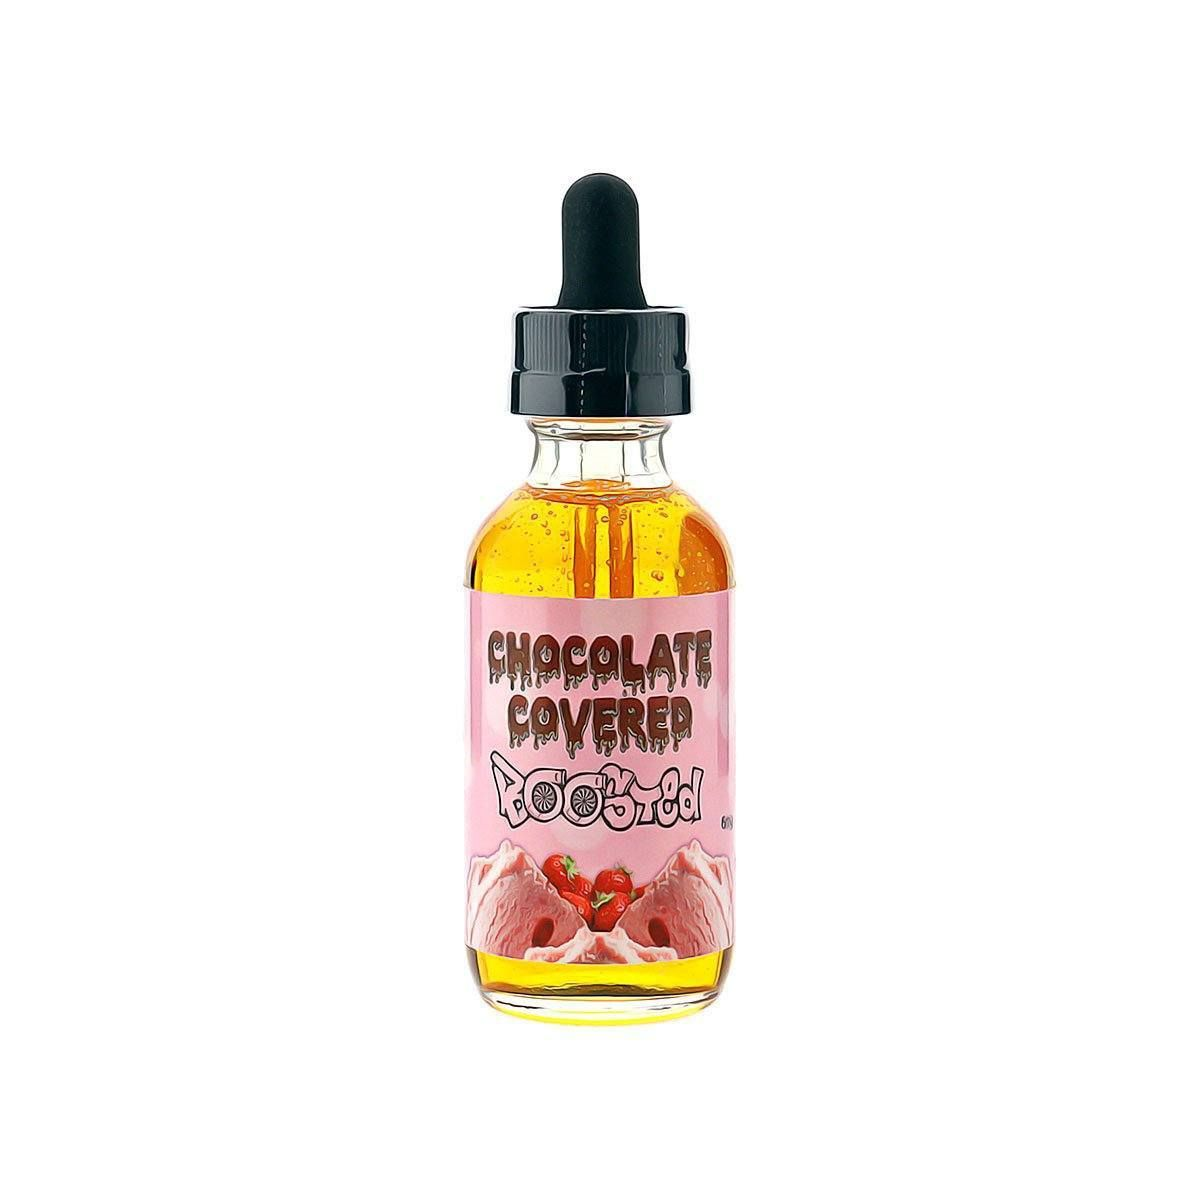 Chocolate covered boosted vape juice by boosted